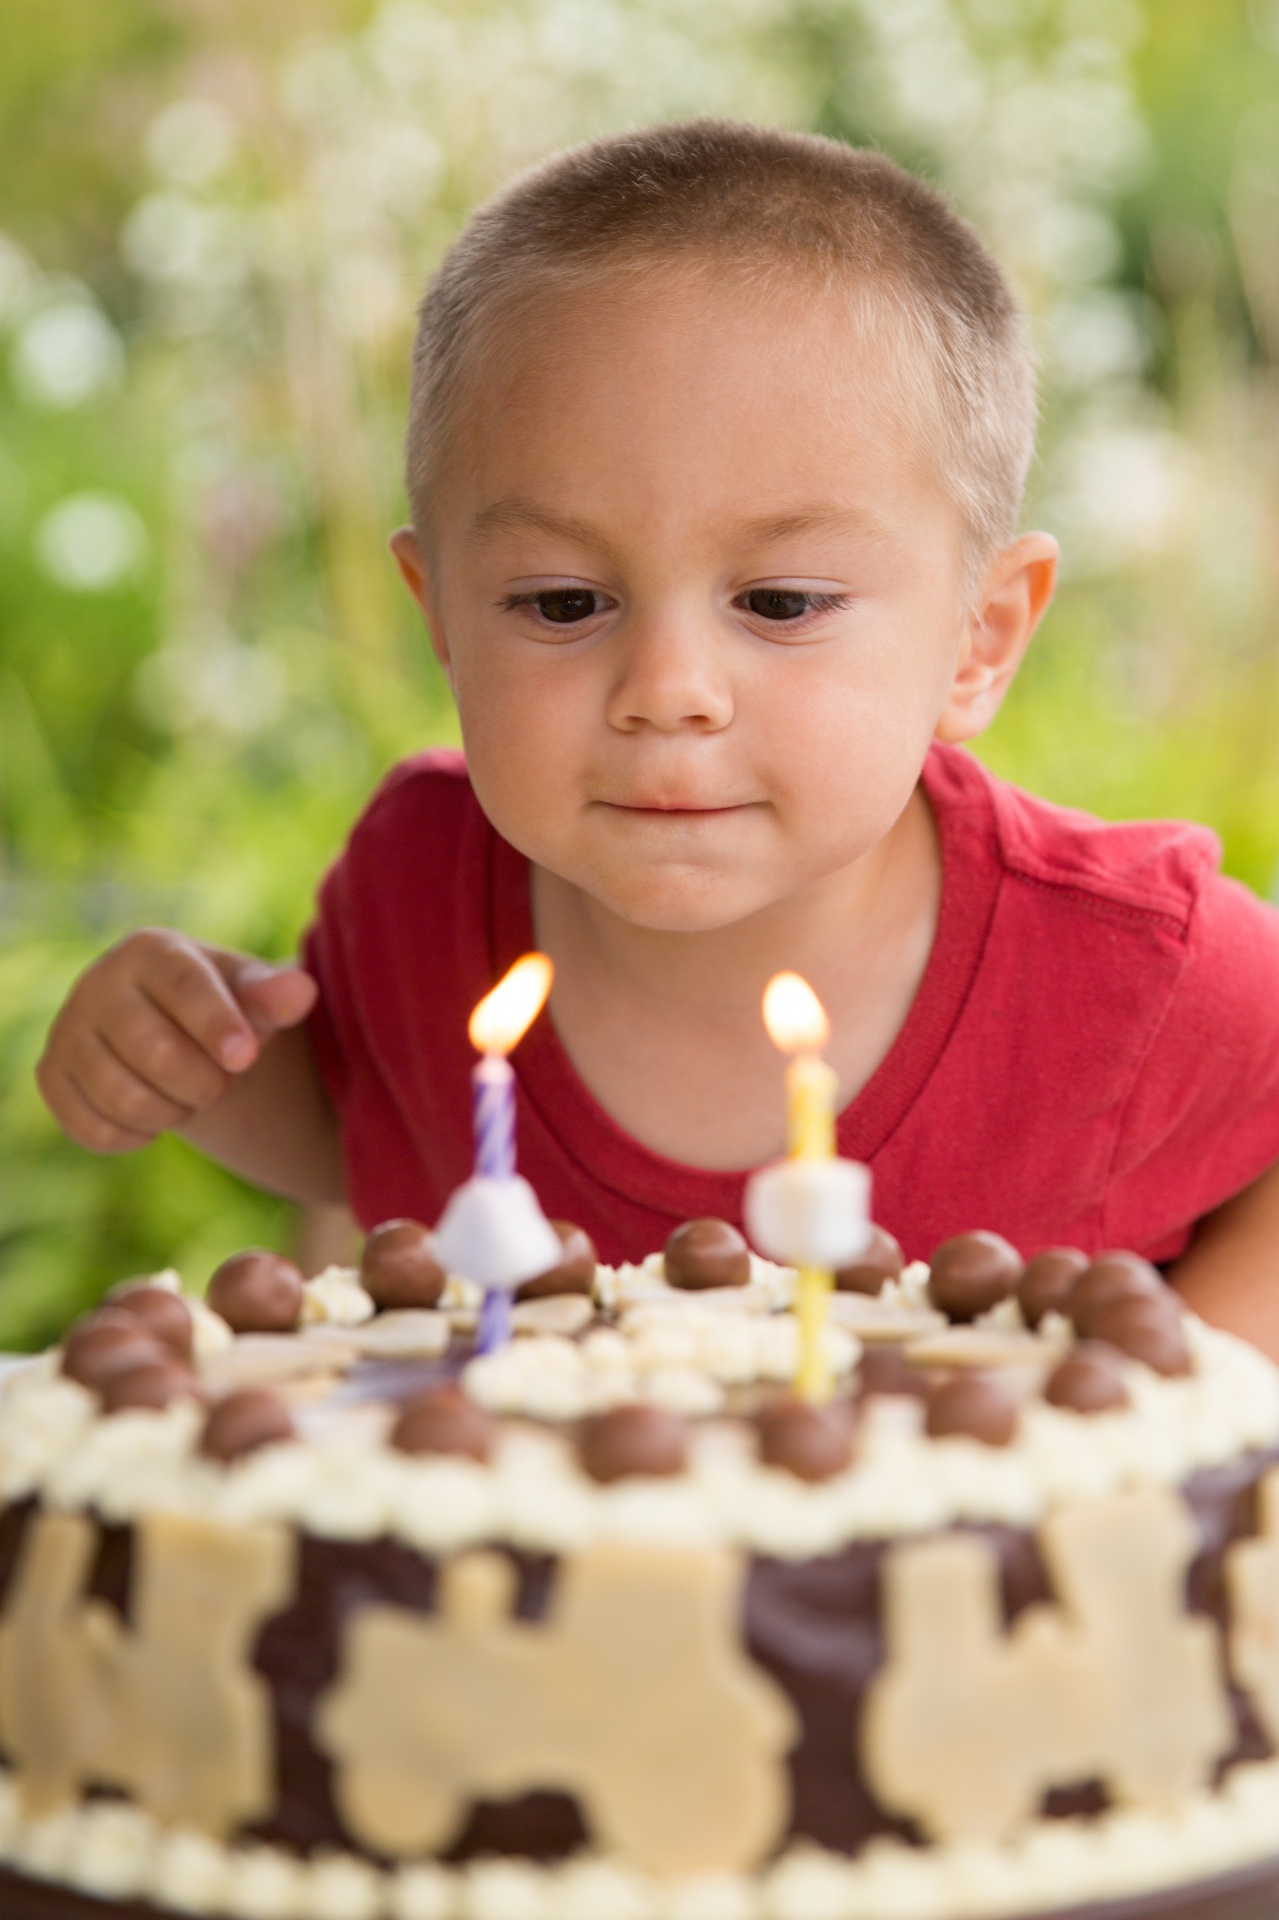 Boy Blowing Out Candles Free Stock Photo Public Domain